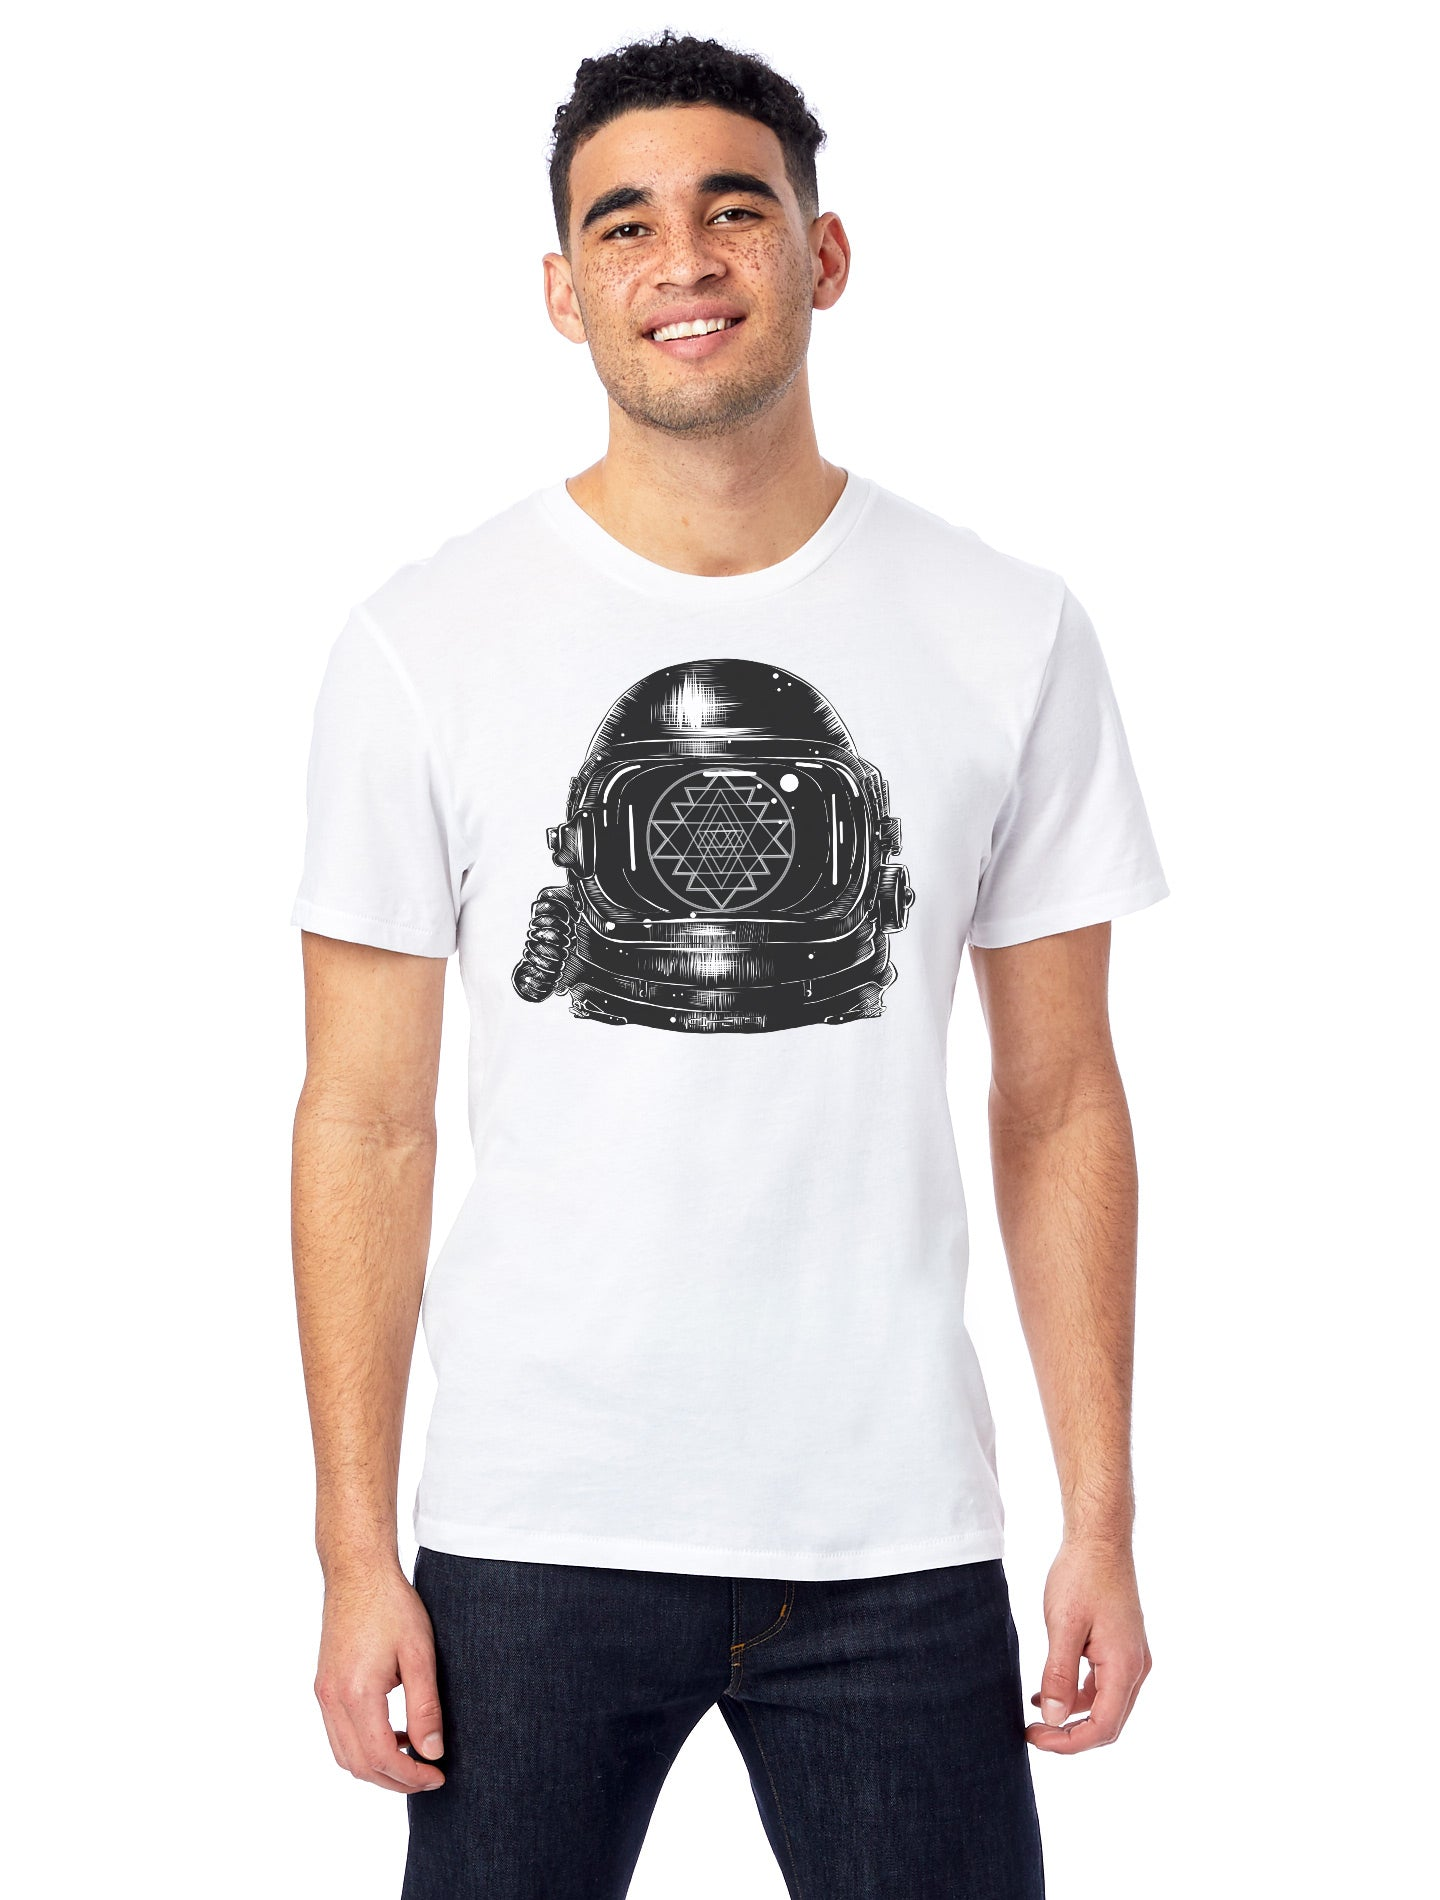 Men's Astronaut - 100% Organic Cotton